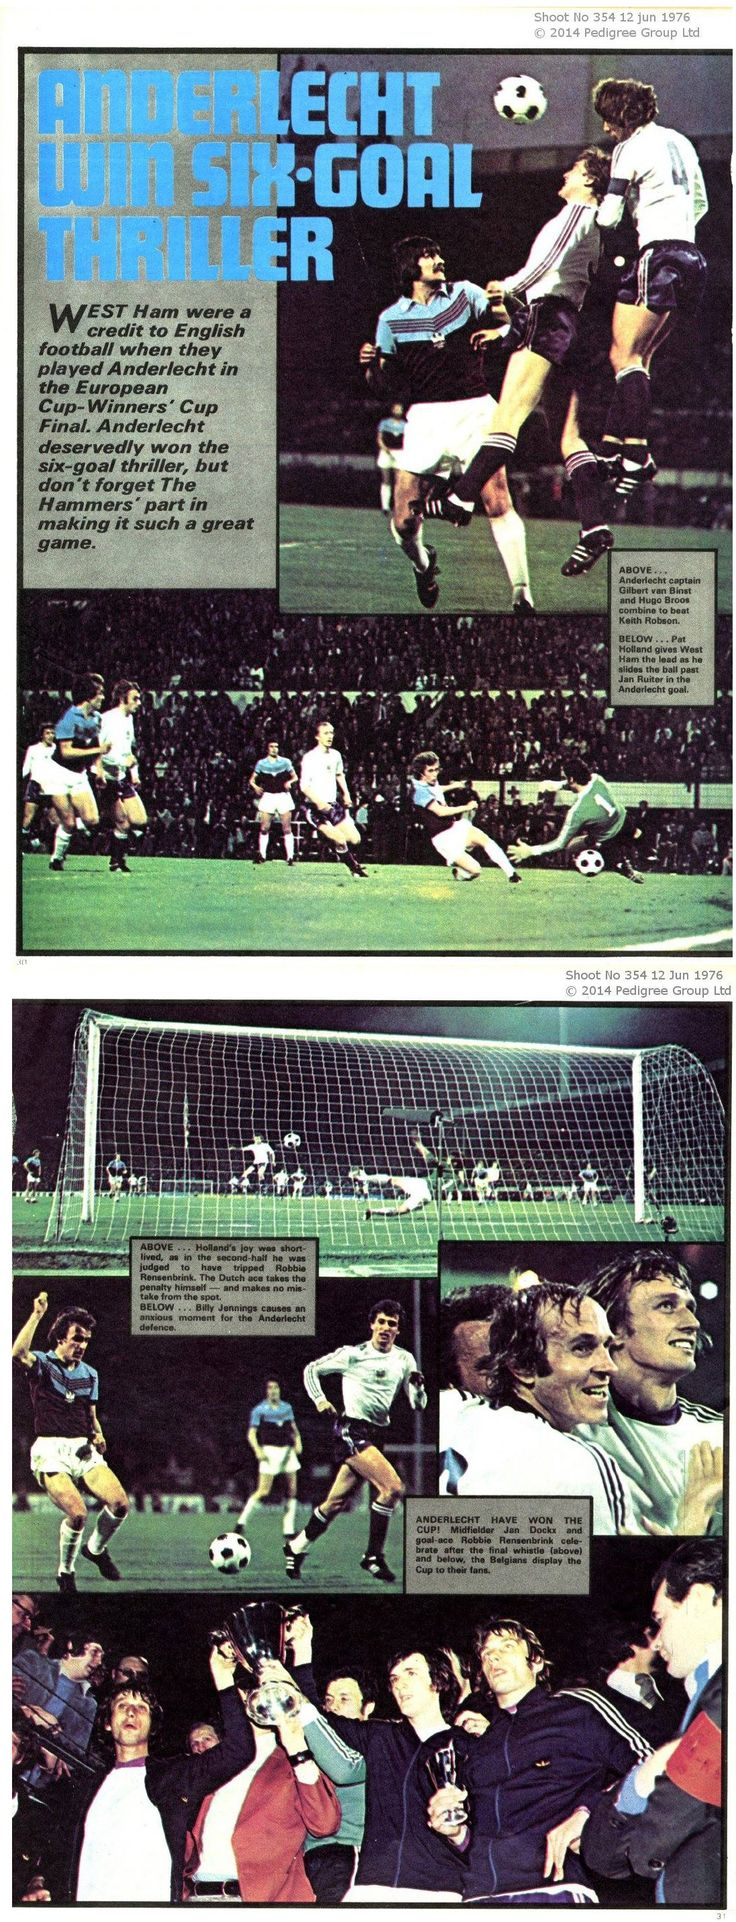 The European Cup Winners Cup Final on the 5th May 1976 at the Heysel Stadium. After such a heroic adventure I was left in tears.